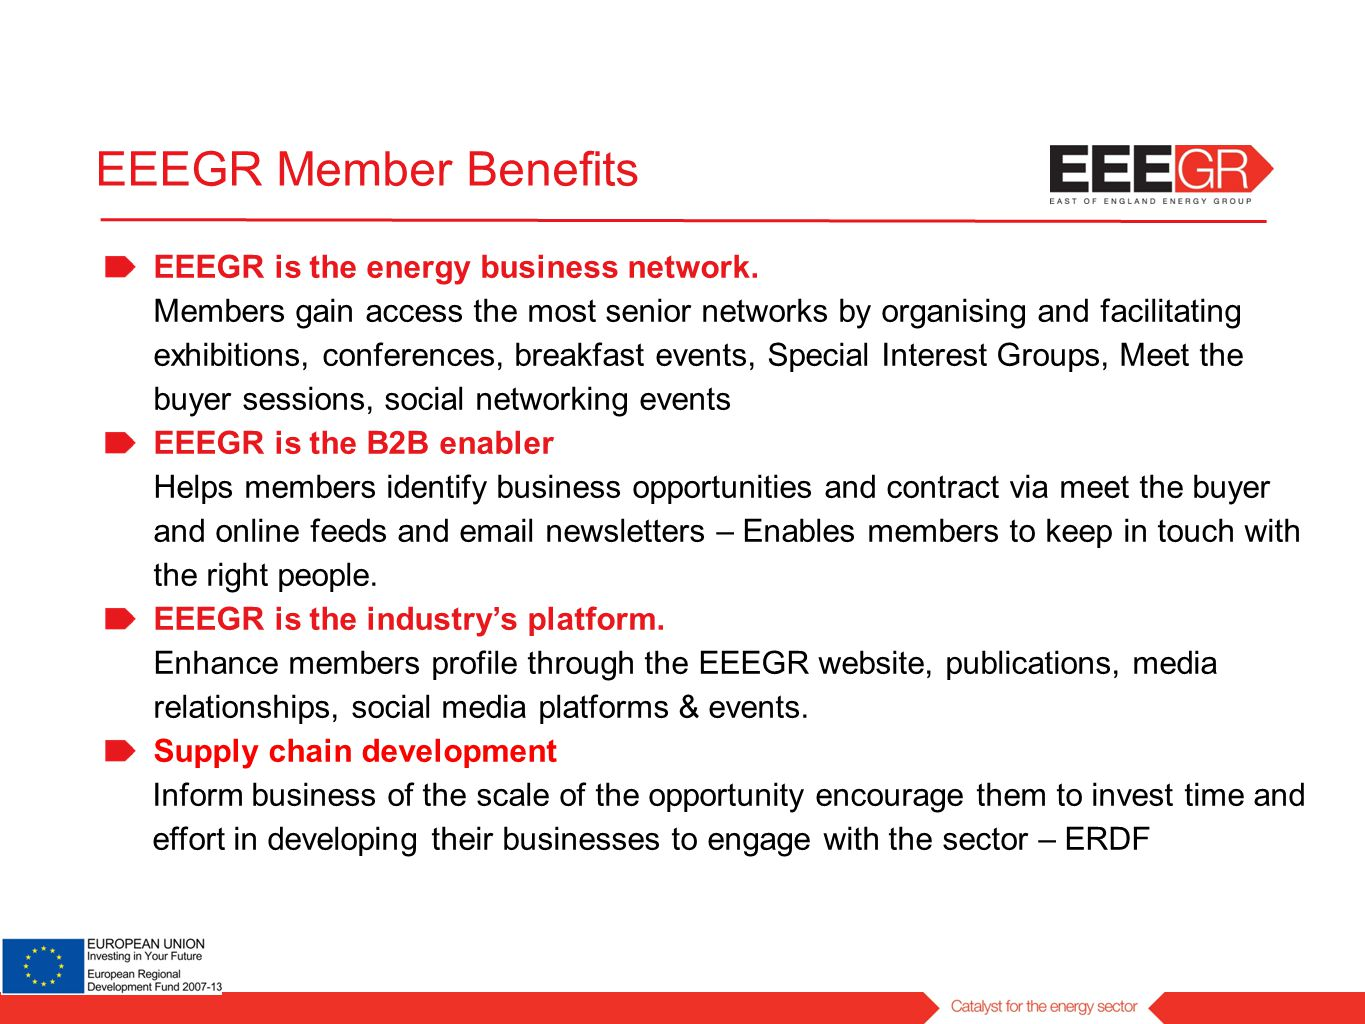 EEEGR is the energy business network.